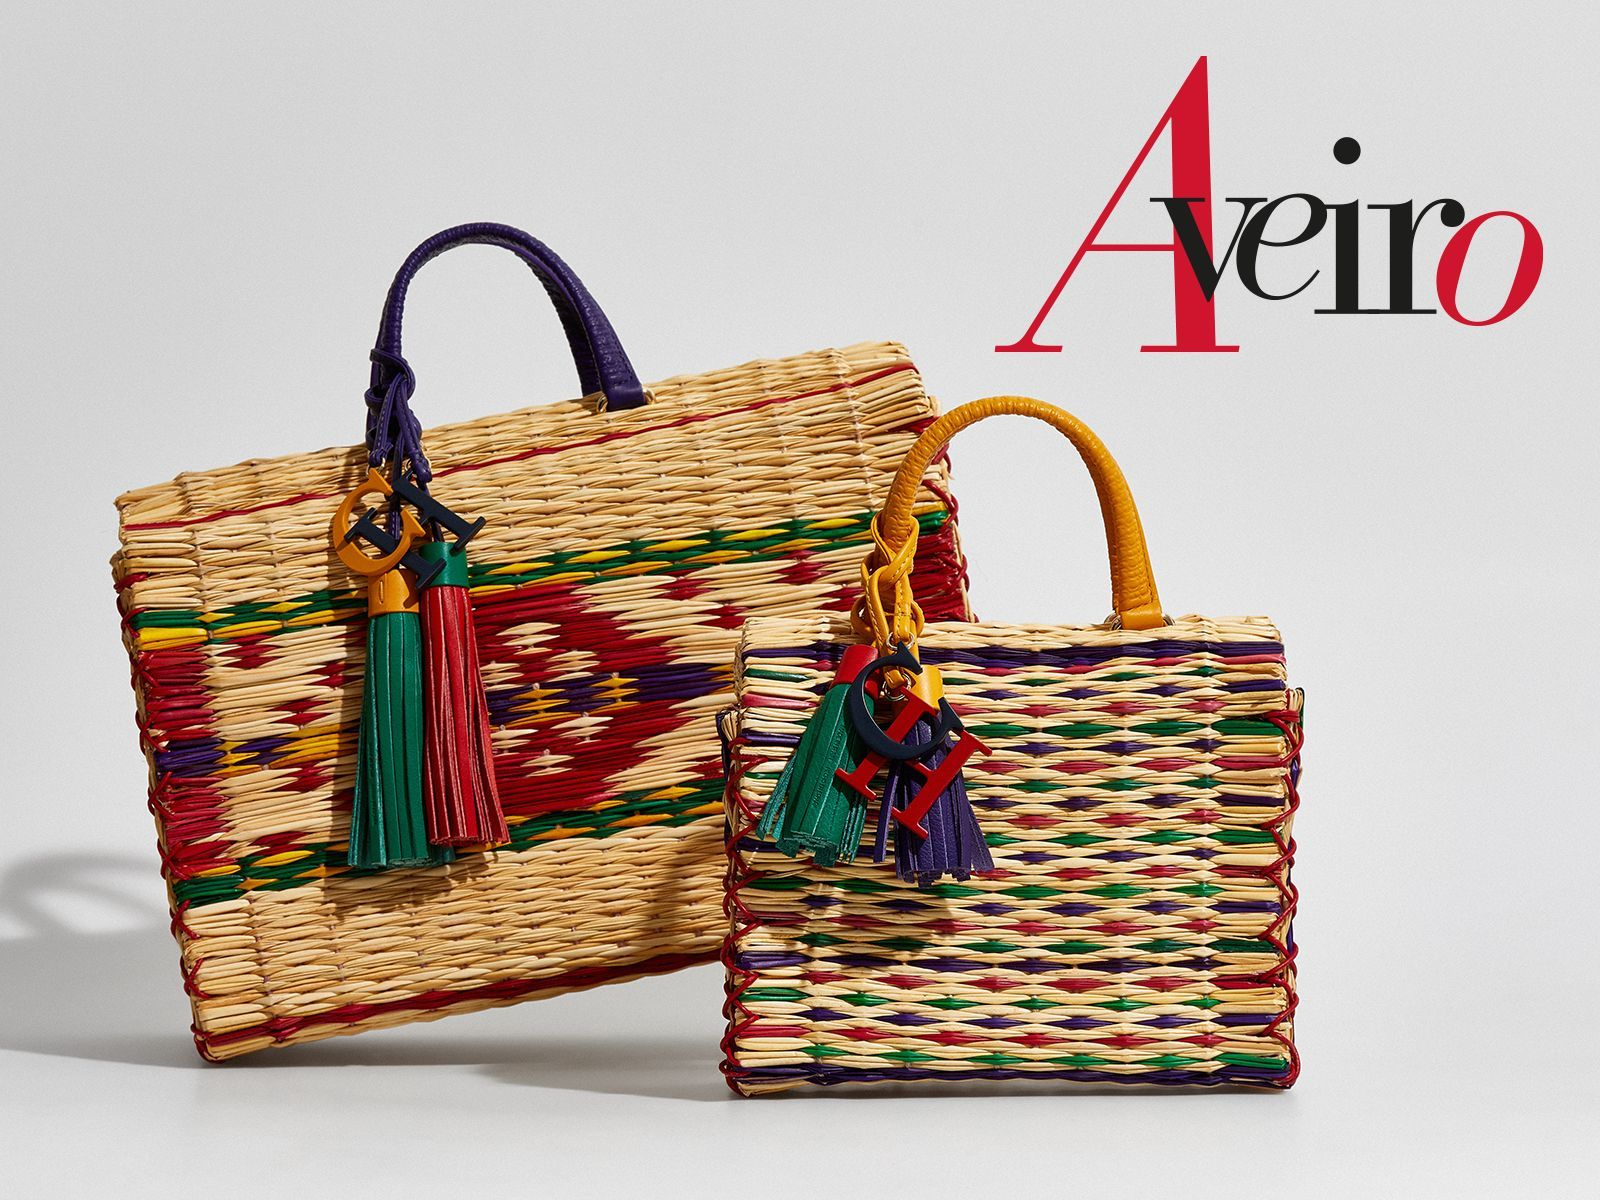 Aveiro | Medium handbag